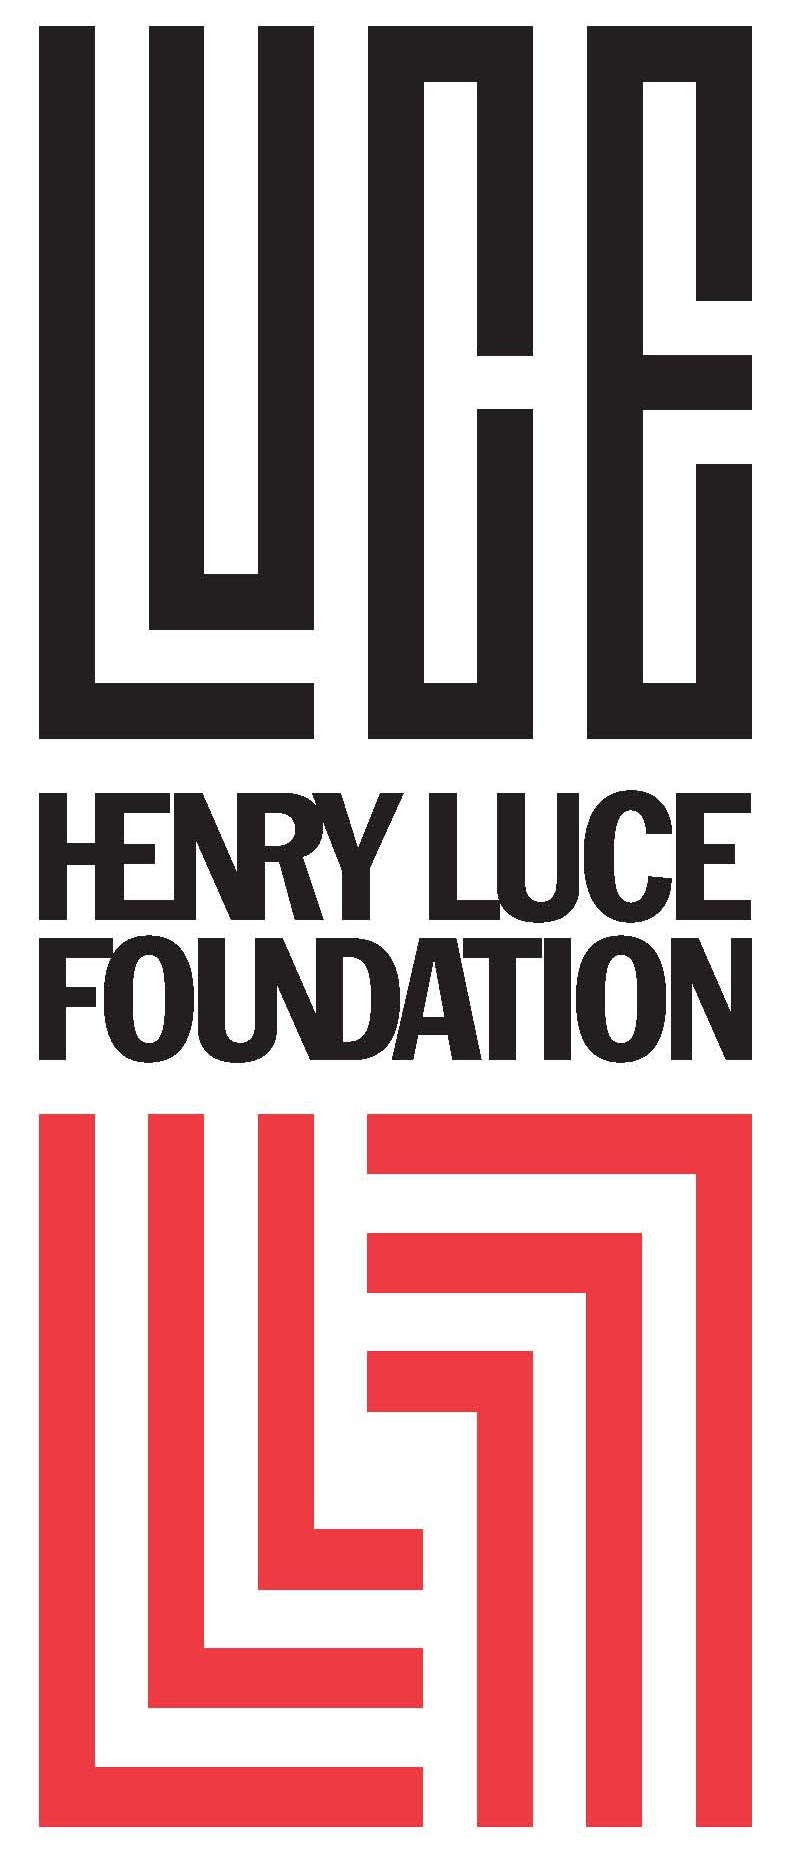 The Henry Luce Foundation